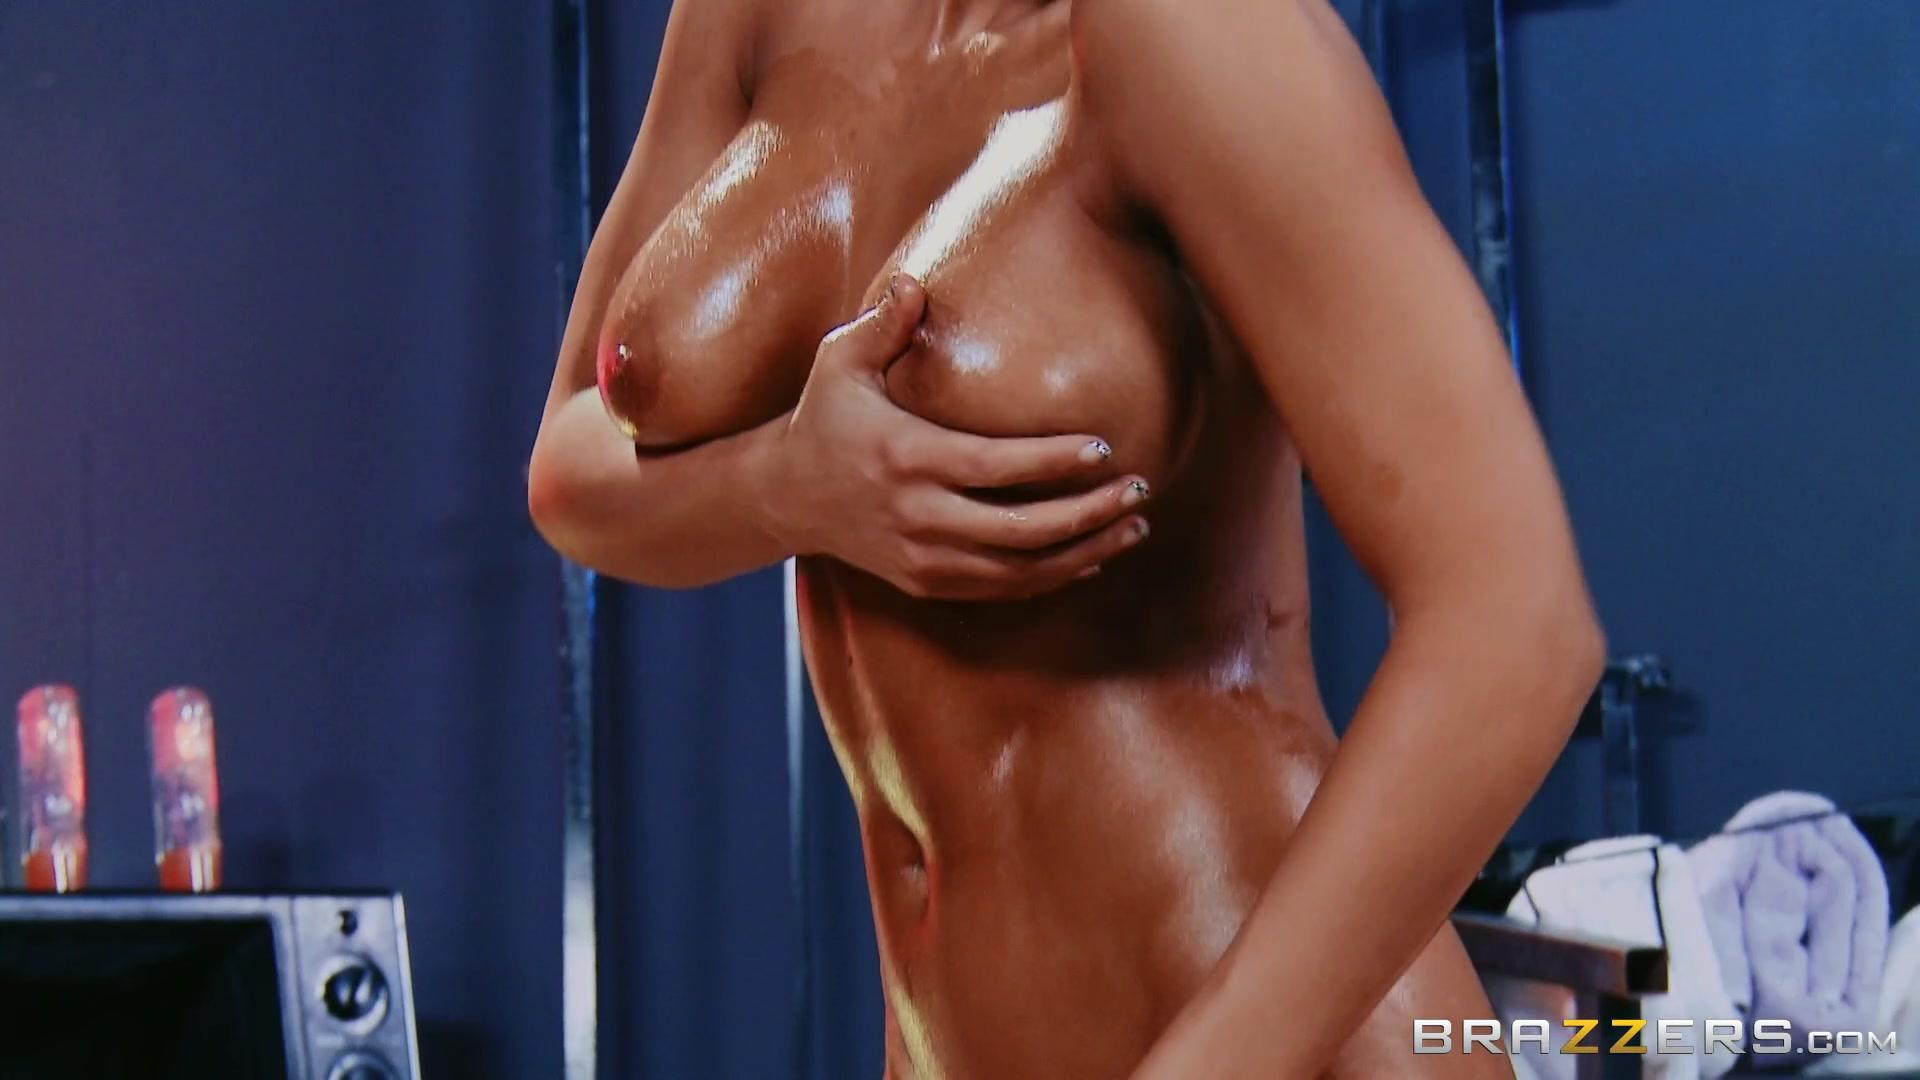 Brazzers Exxtra – Best Of Brazzers Madison Ivy